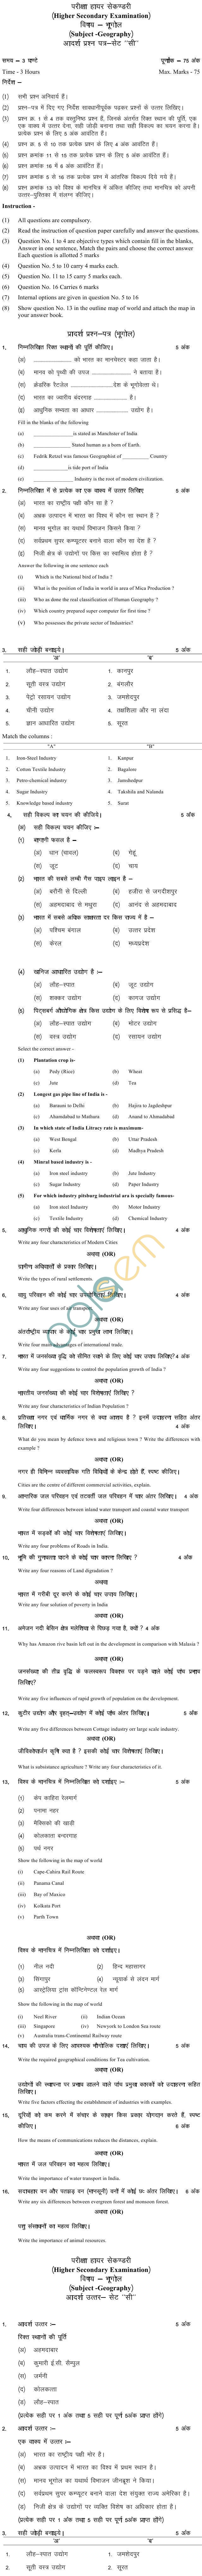 MP Board Class XII Geography Model Questions & Answers - Set 4